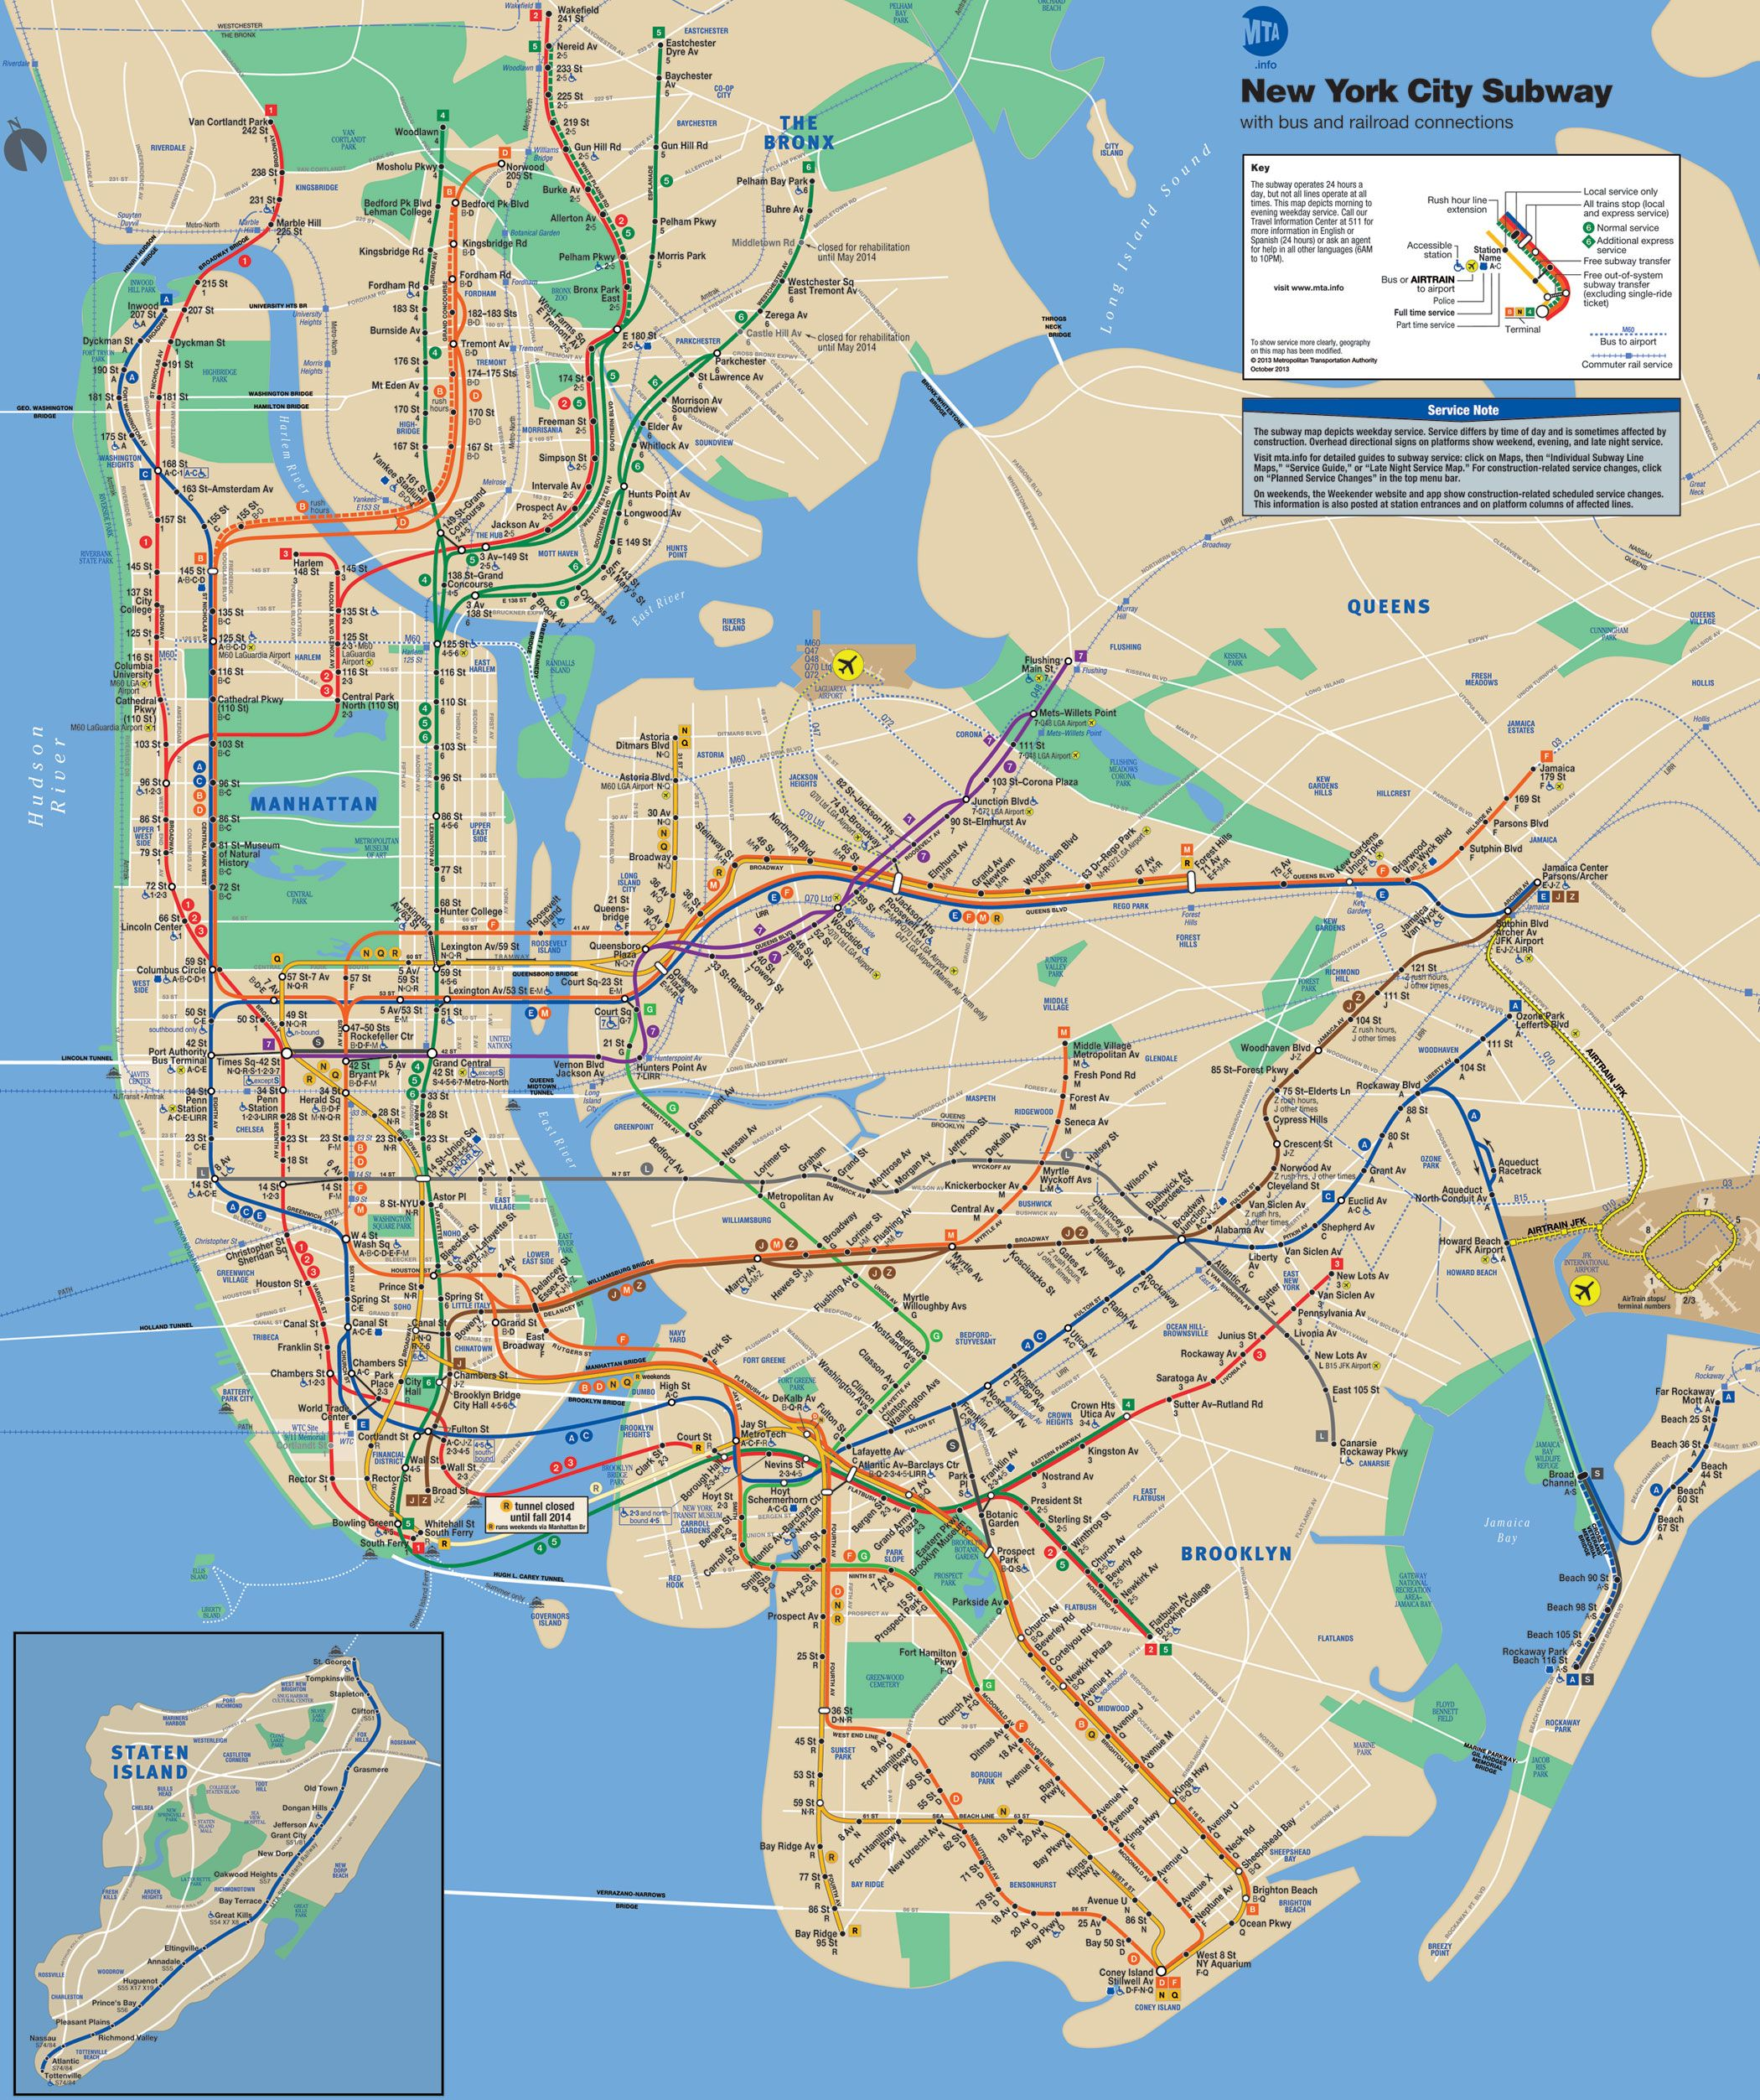 mta brooklyn train map Mta Info Mta Subway Map Map Of New York Nyc Subway Map Train Map mta brooklyn train map